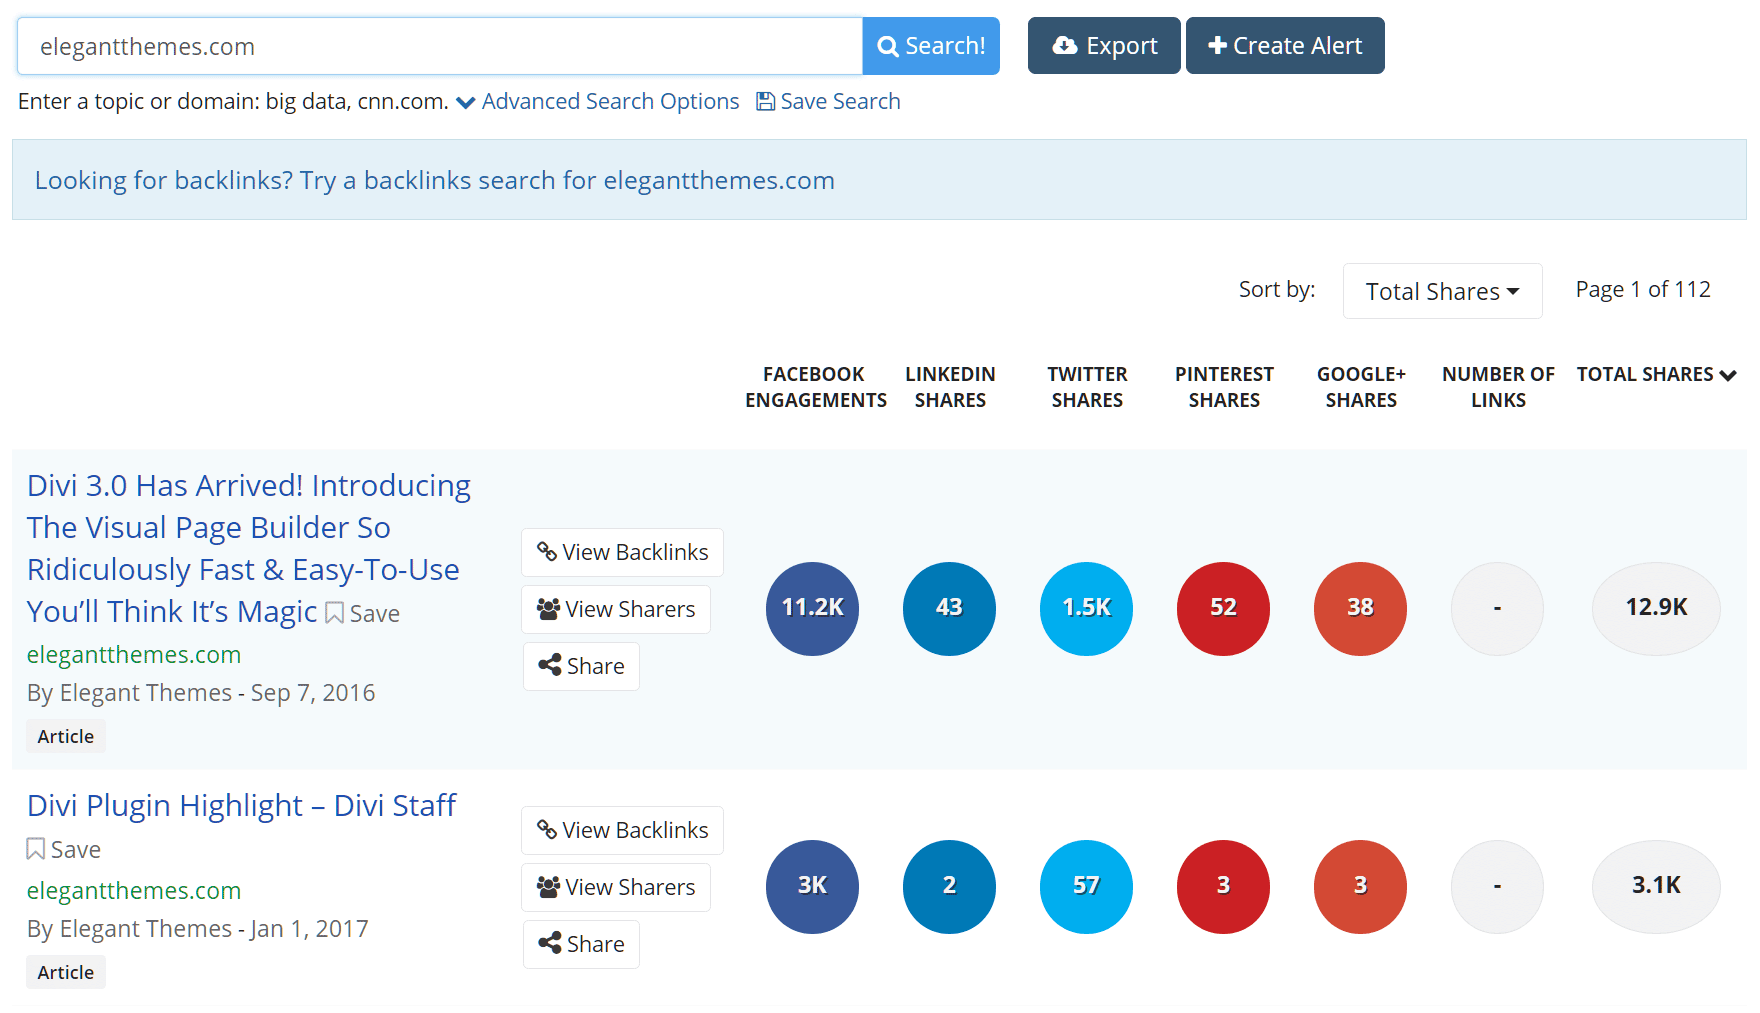 Find your popular content with Buzzsumo